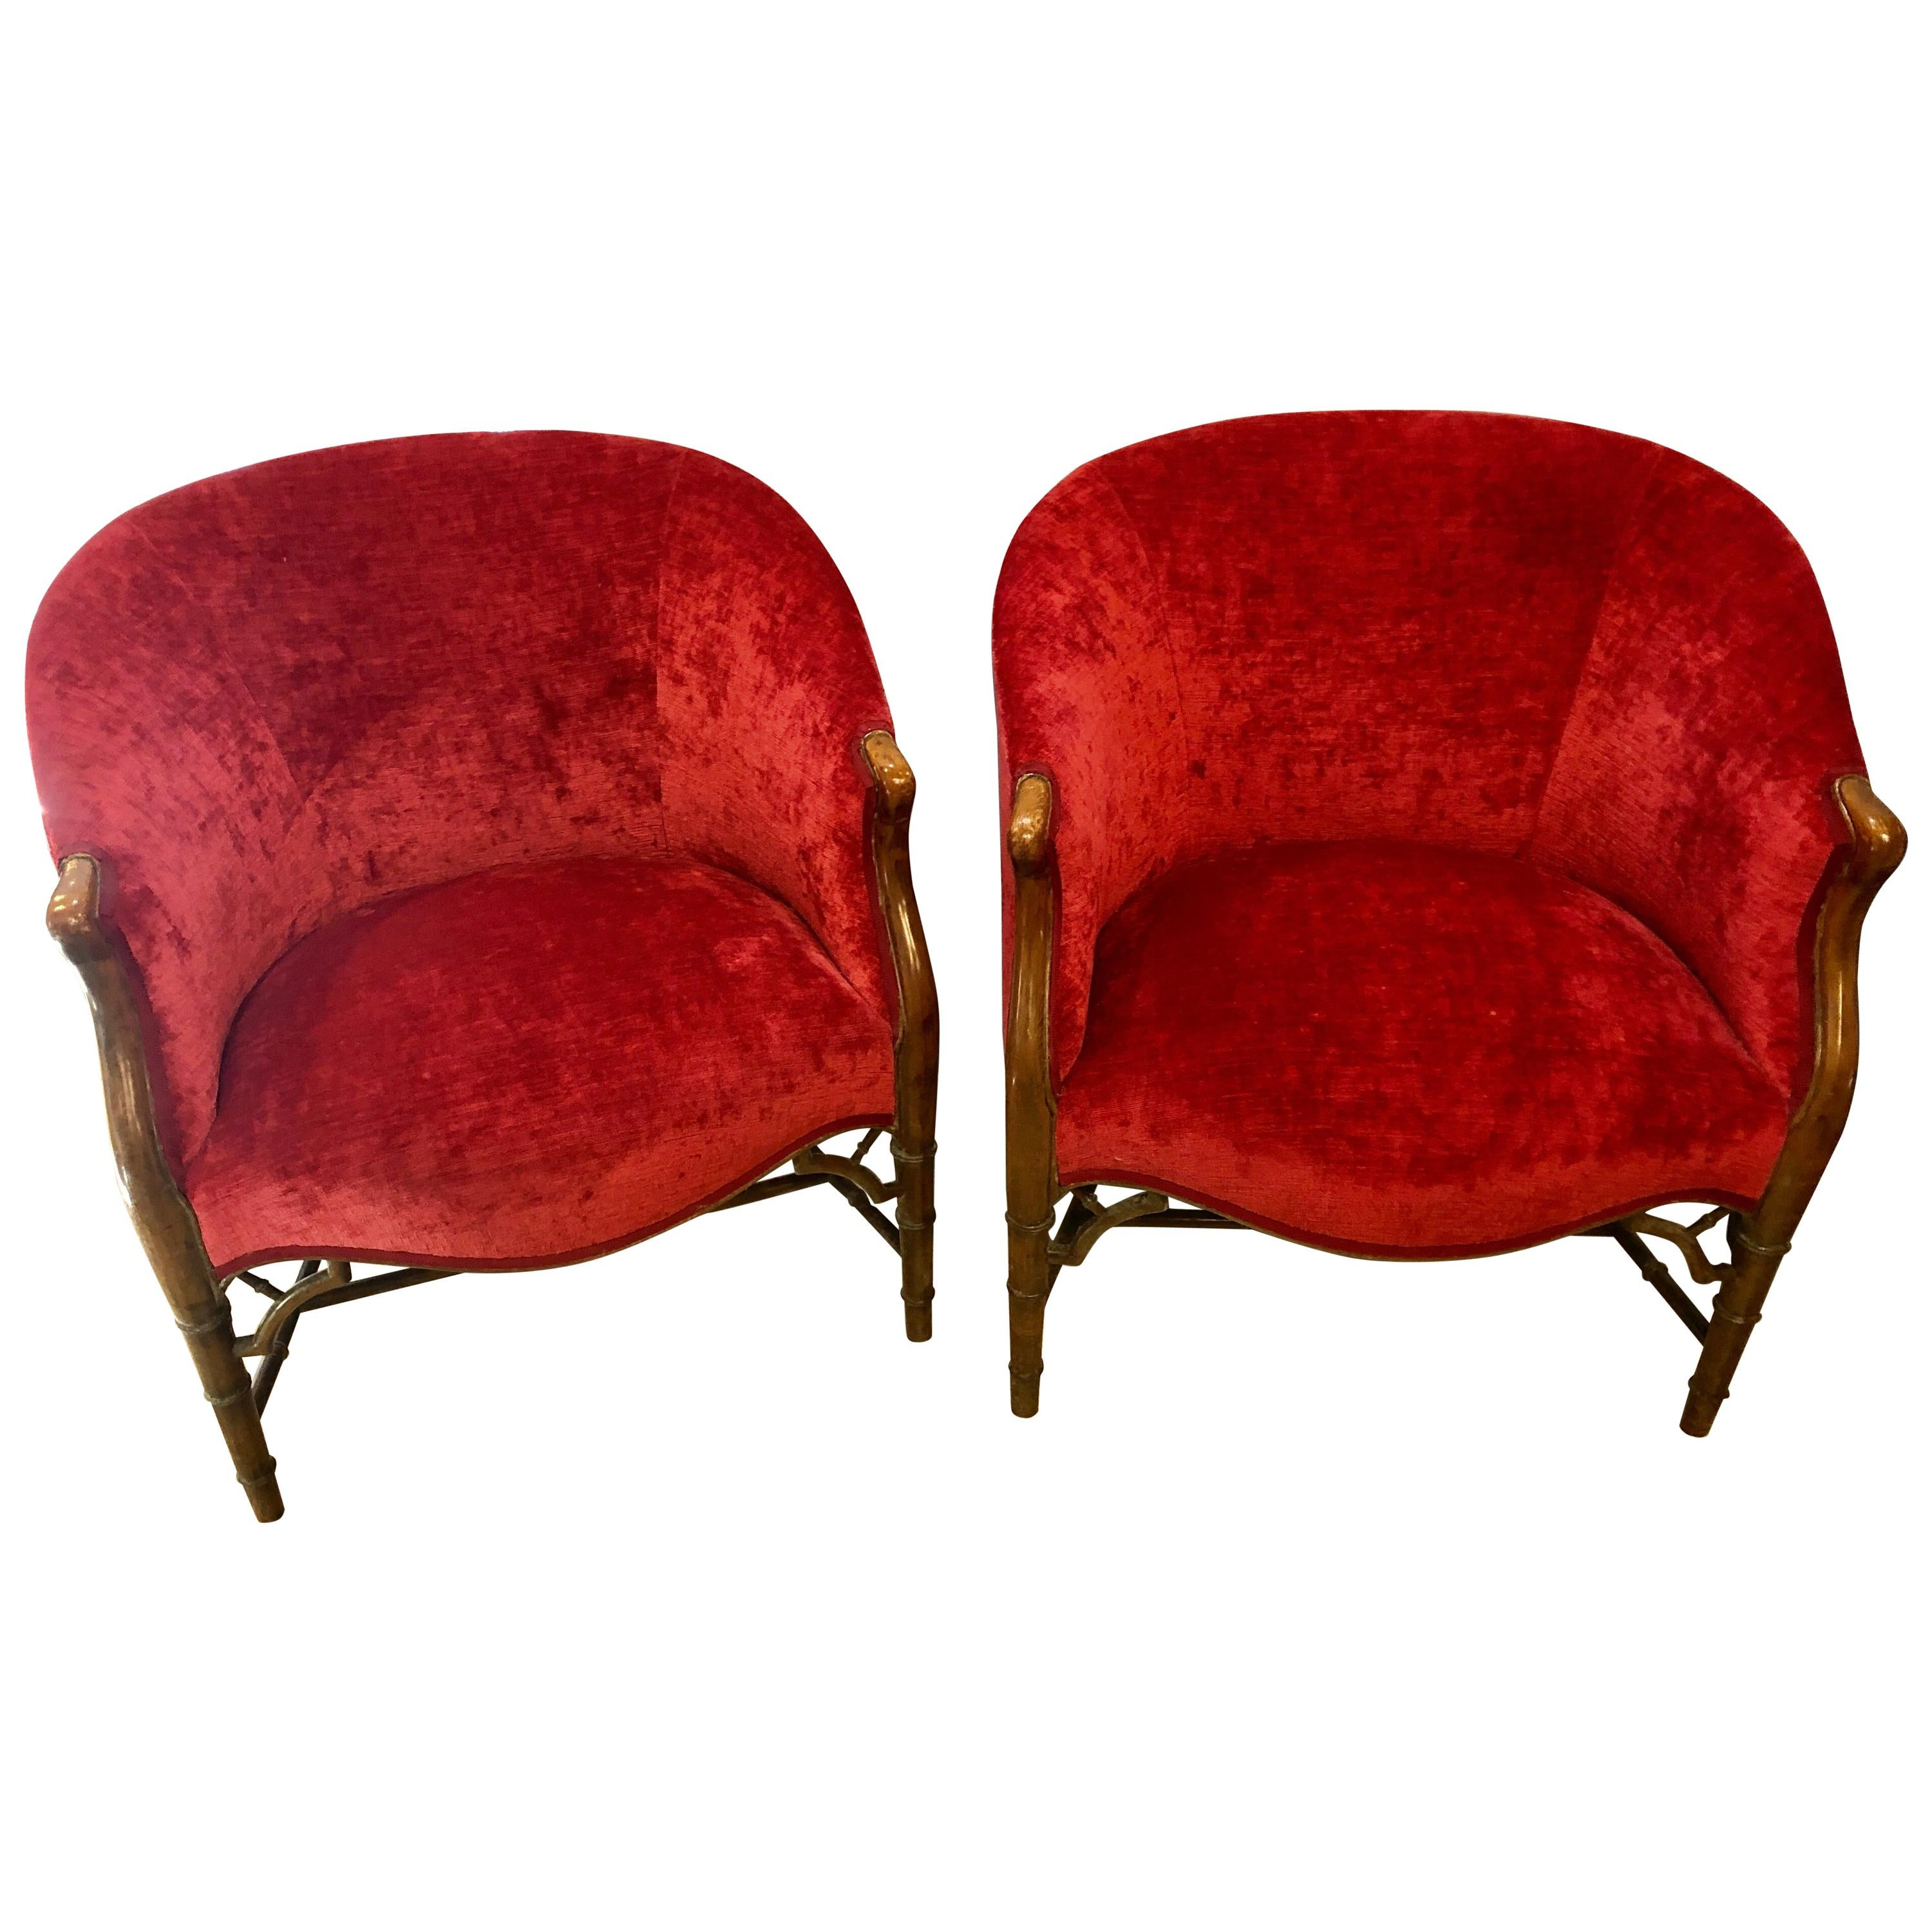 Pair of Bamboo Legged Cherry Red Velour 19th-20th Century Barrel Back Chairs